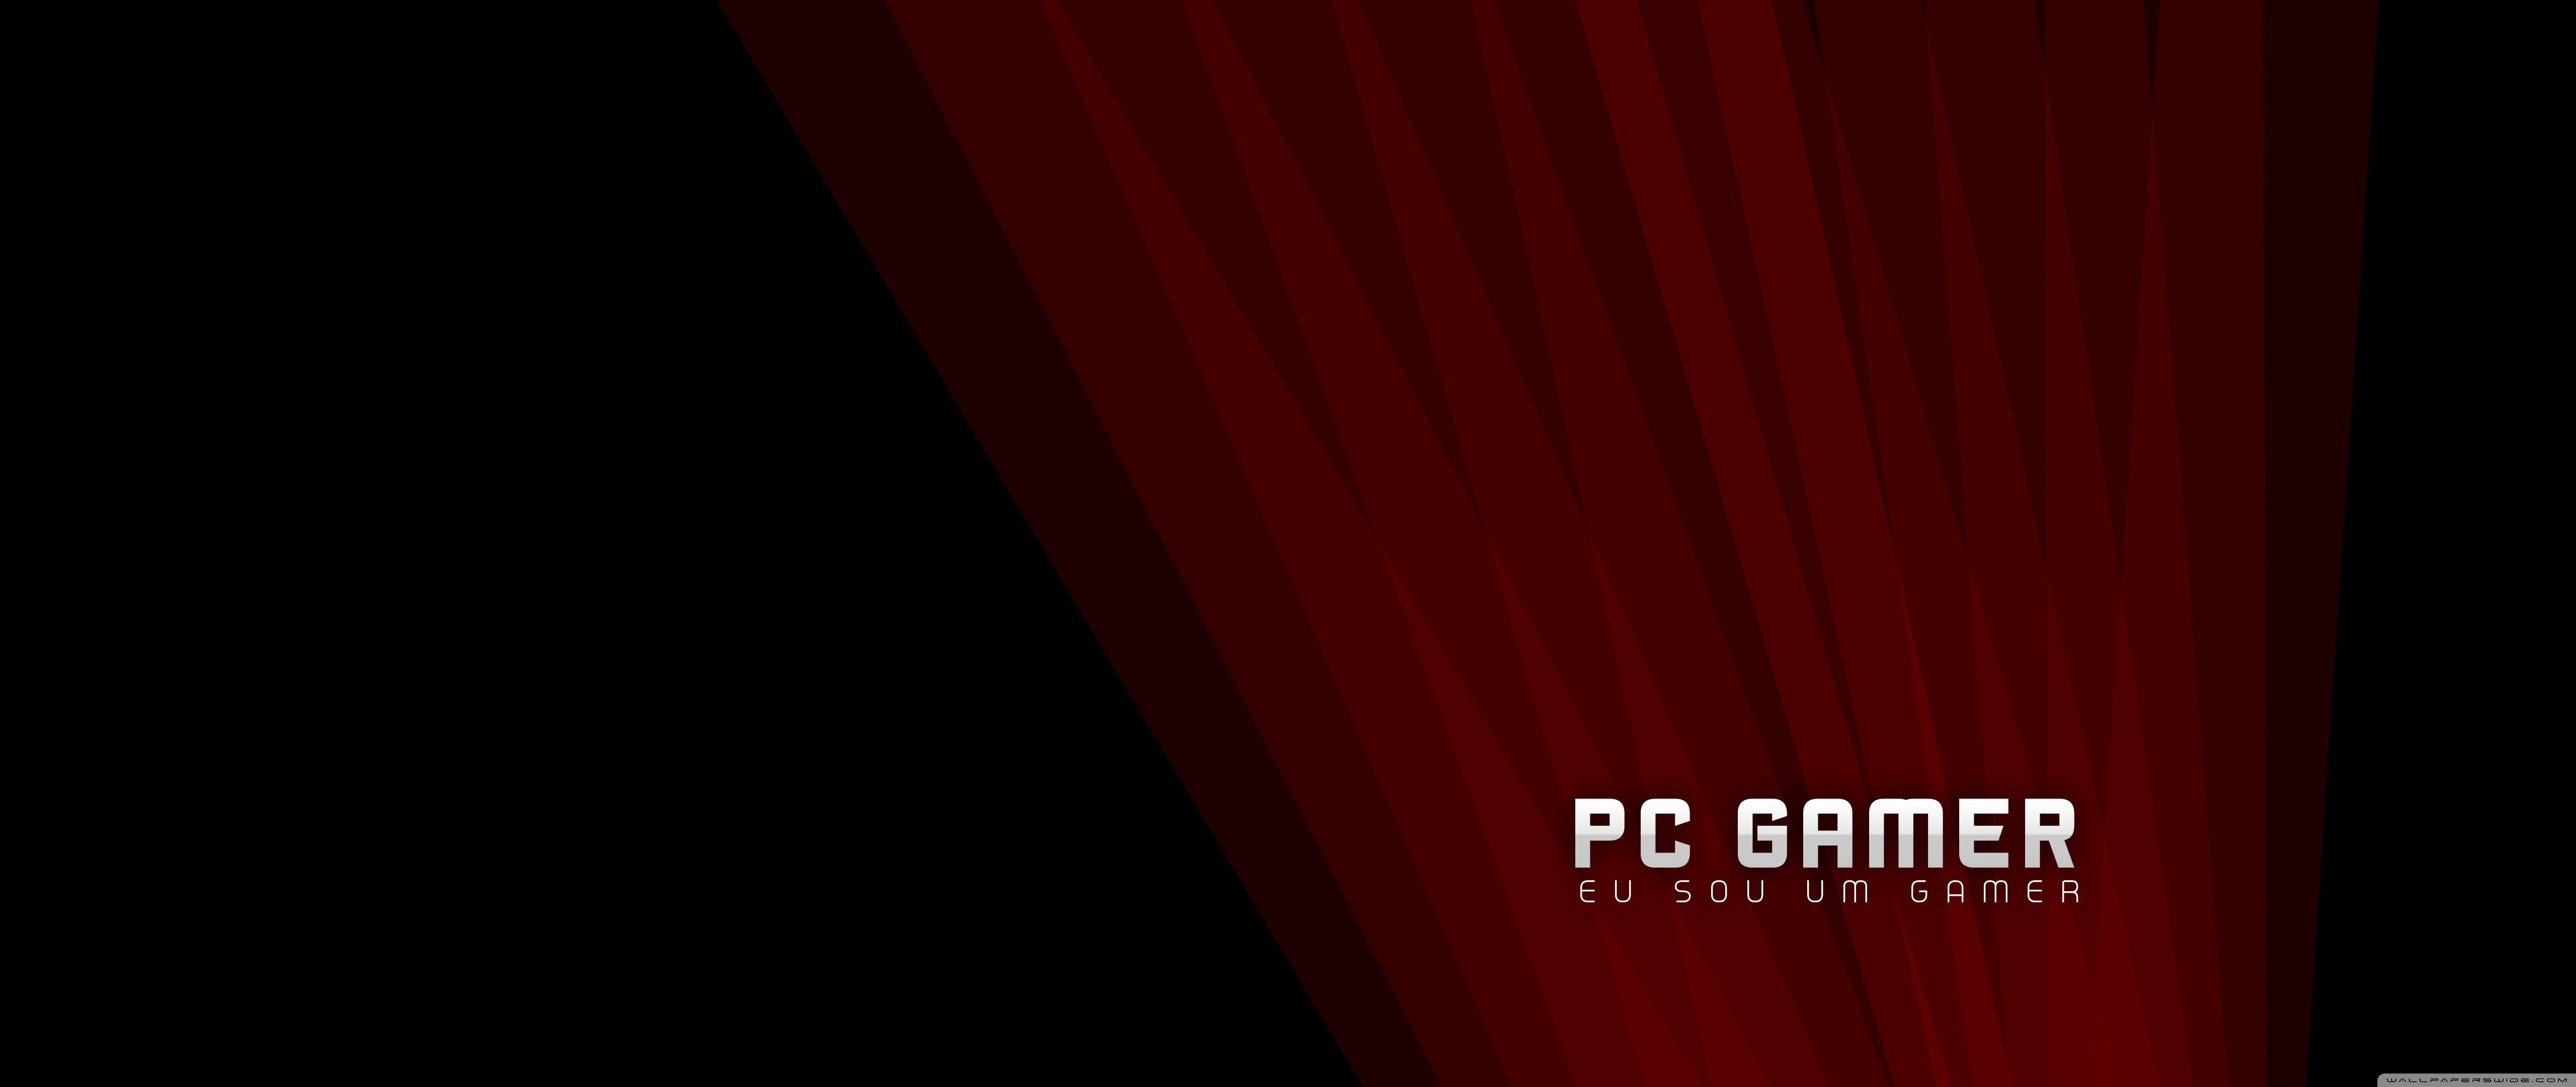 Pc Gamers Wallpapers Wallpaper Cave